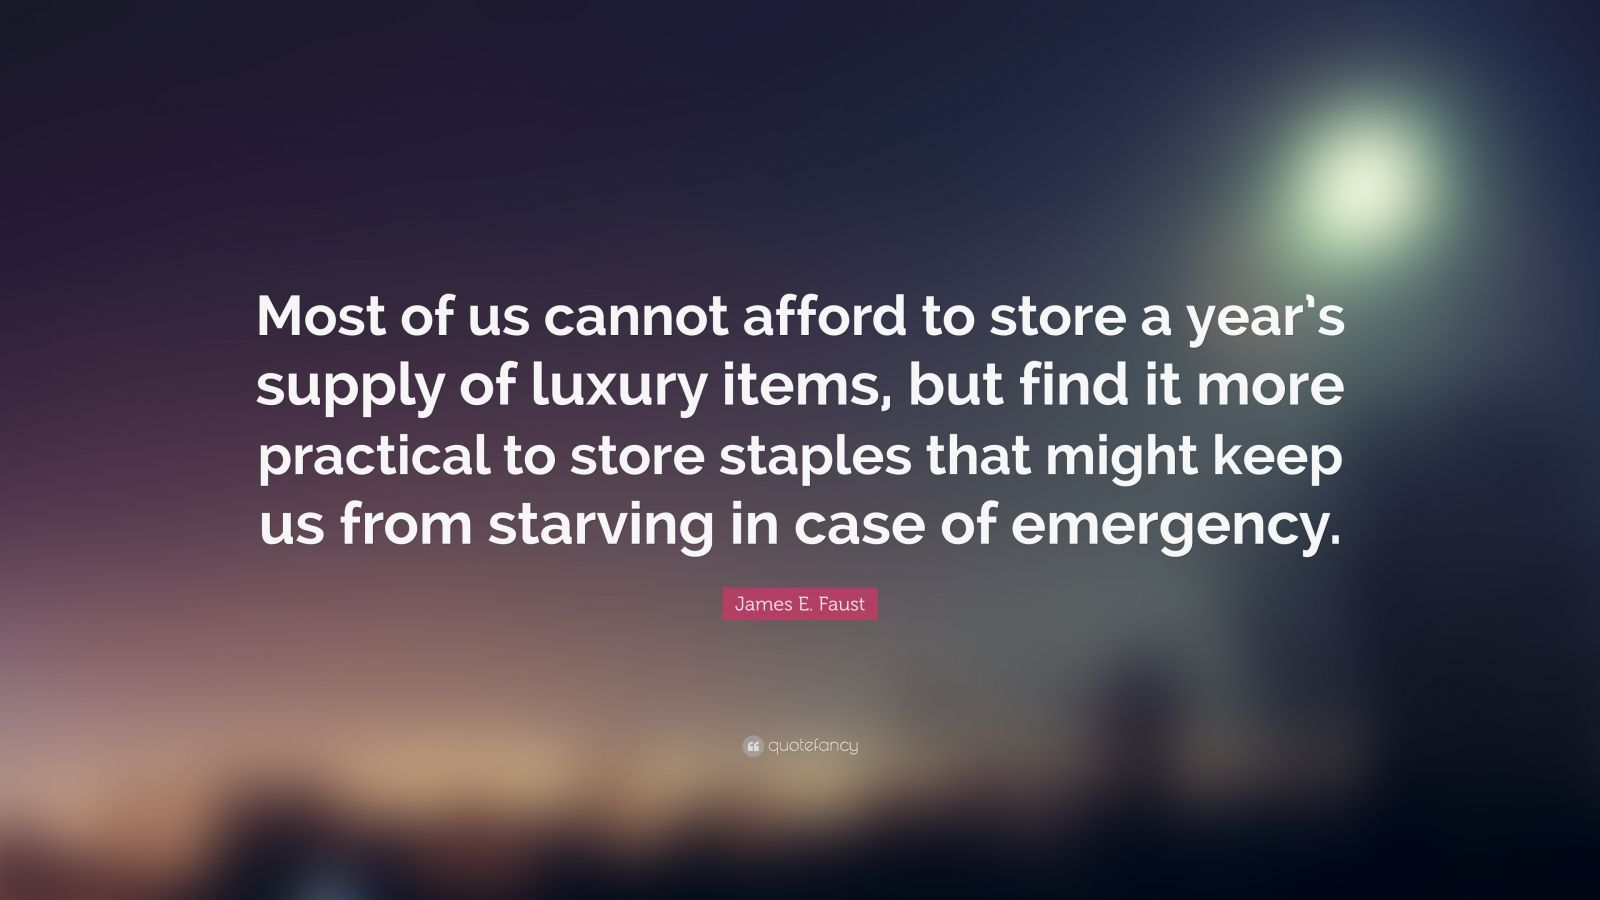 "James E. Faust Quote: ""Most of us cannot afford to store a year's supply of luxury items, but find it more practical to store staples that might keep us from starving in case of emergency."""